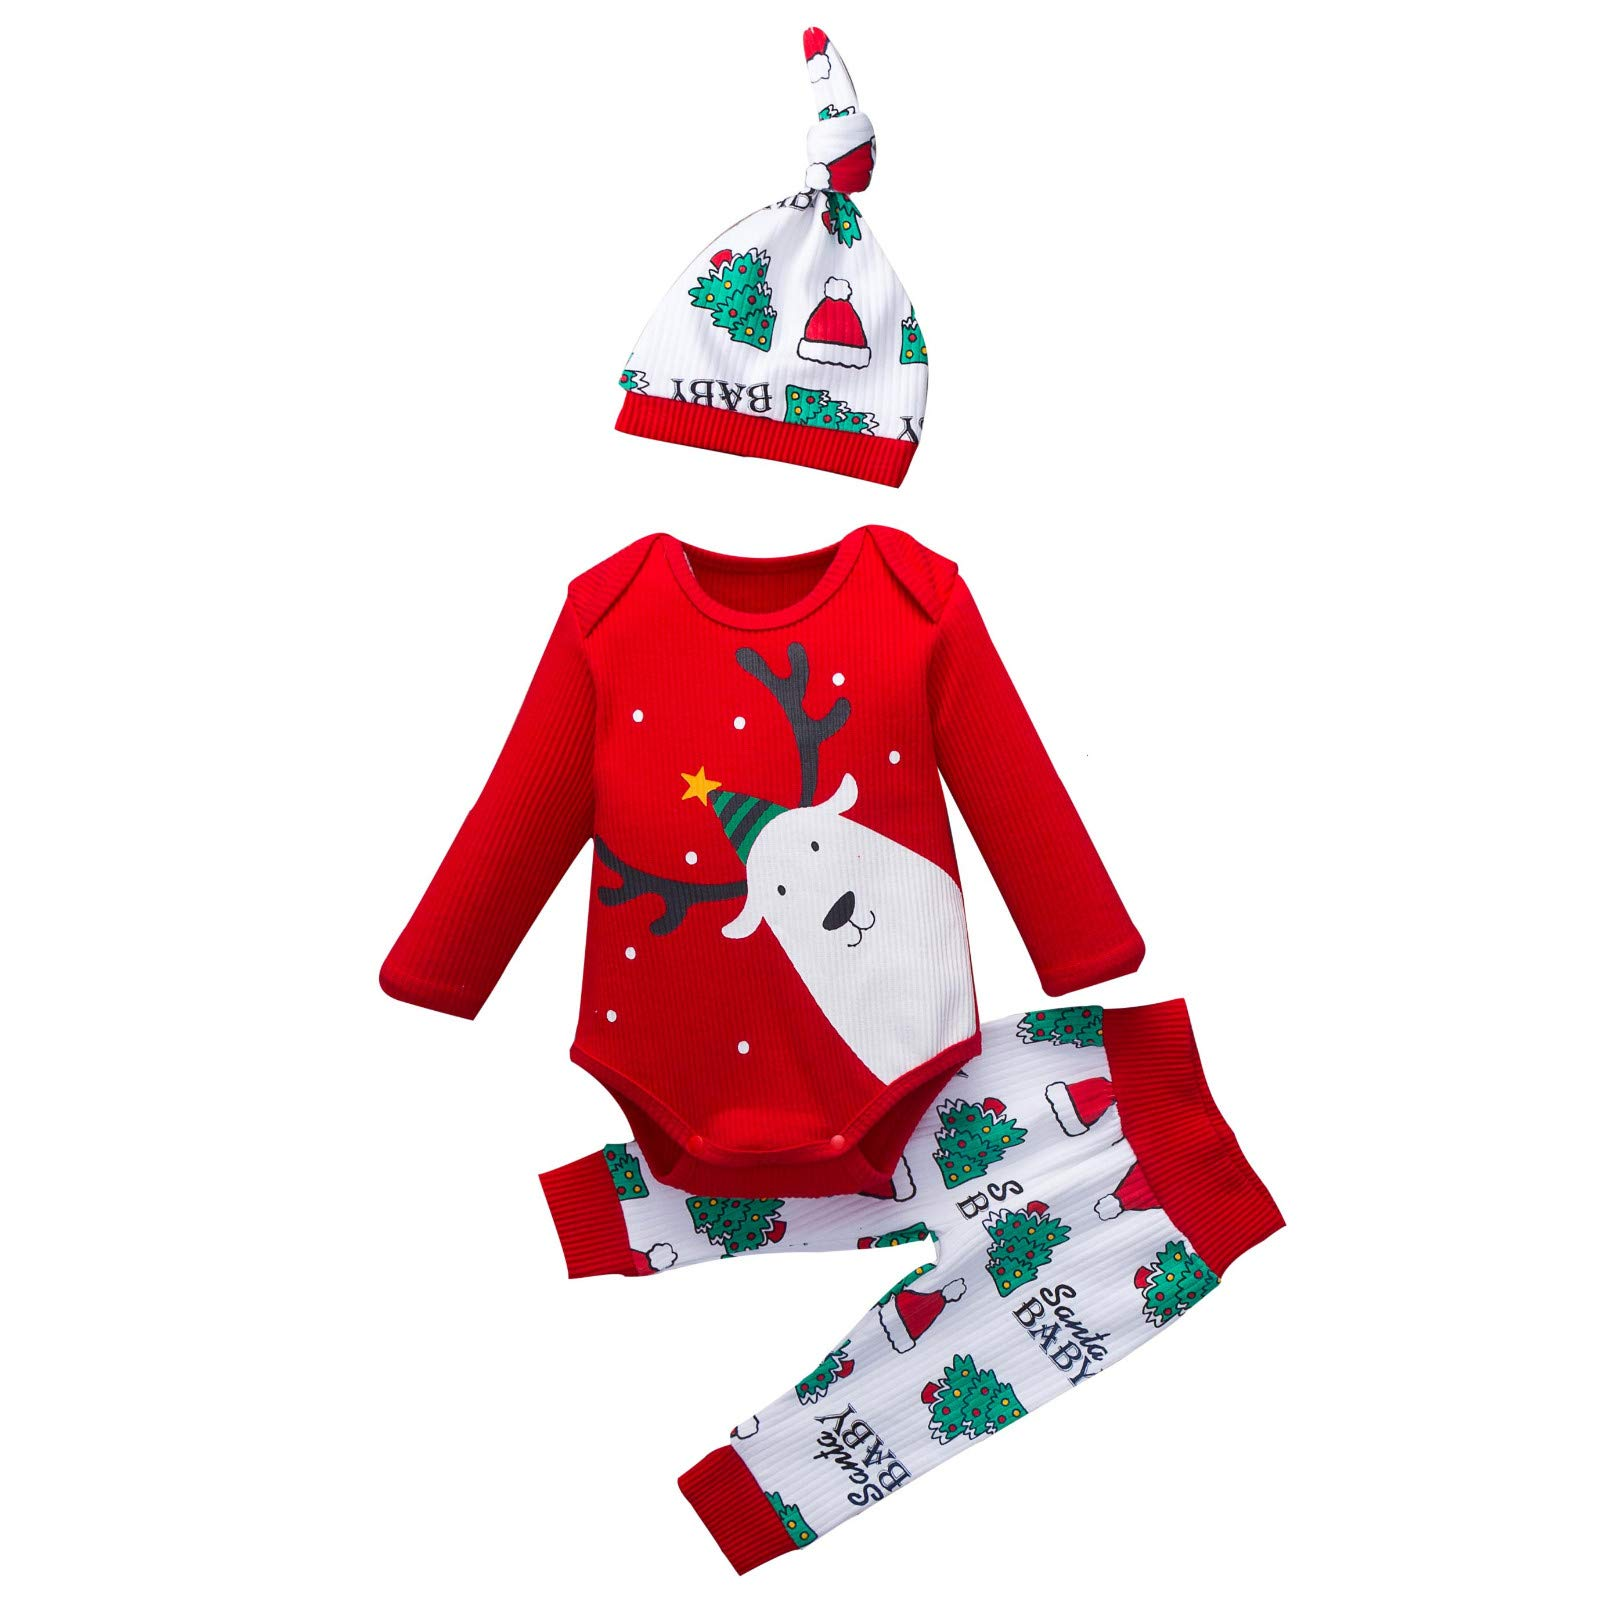 GorNorriss Baby My 1st Christmas Rompers, Christmas Outfits Baby Boys Bodysuit Santa Claus Pants with Christmas Hat by GorNorriss